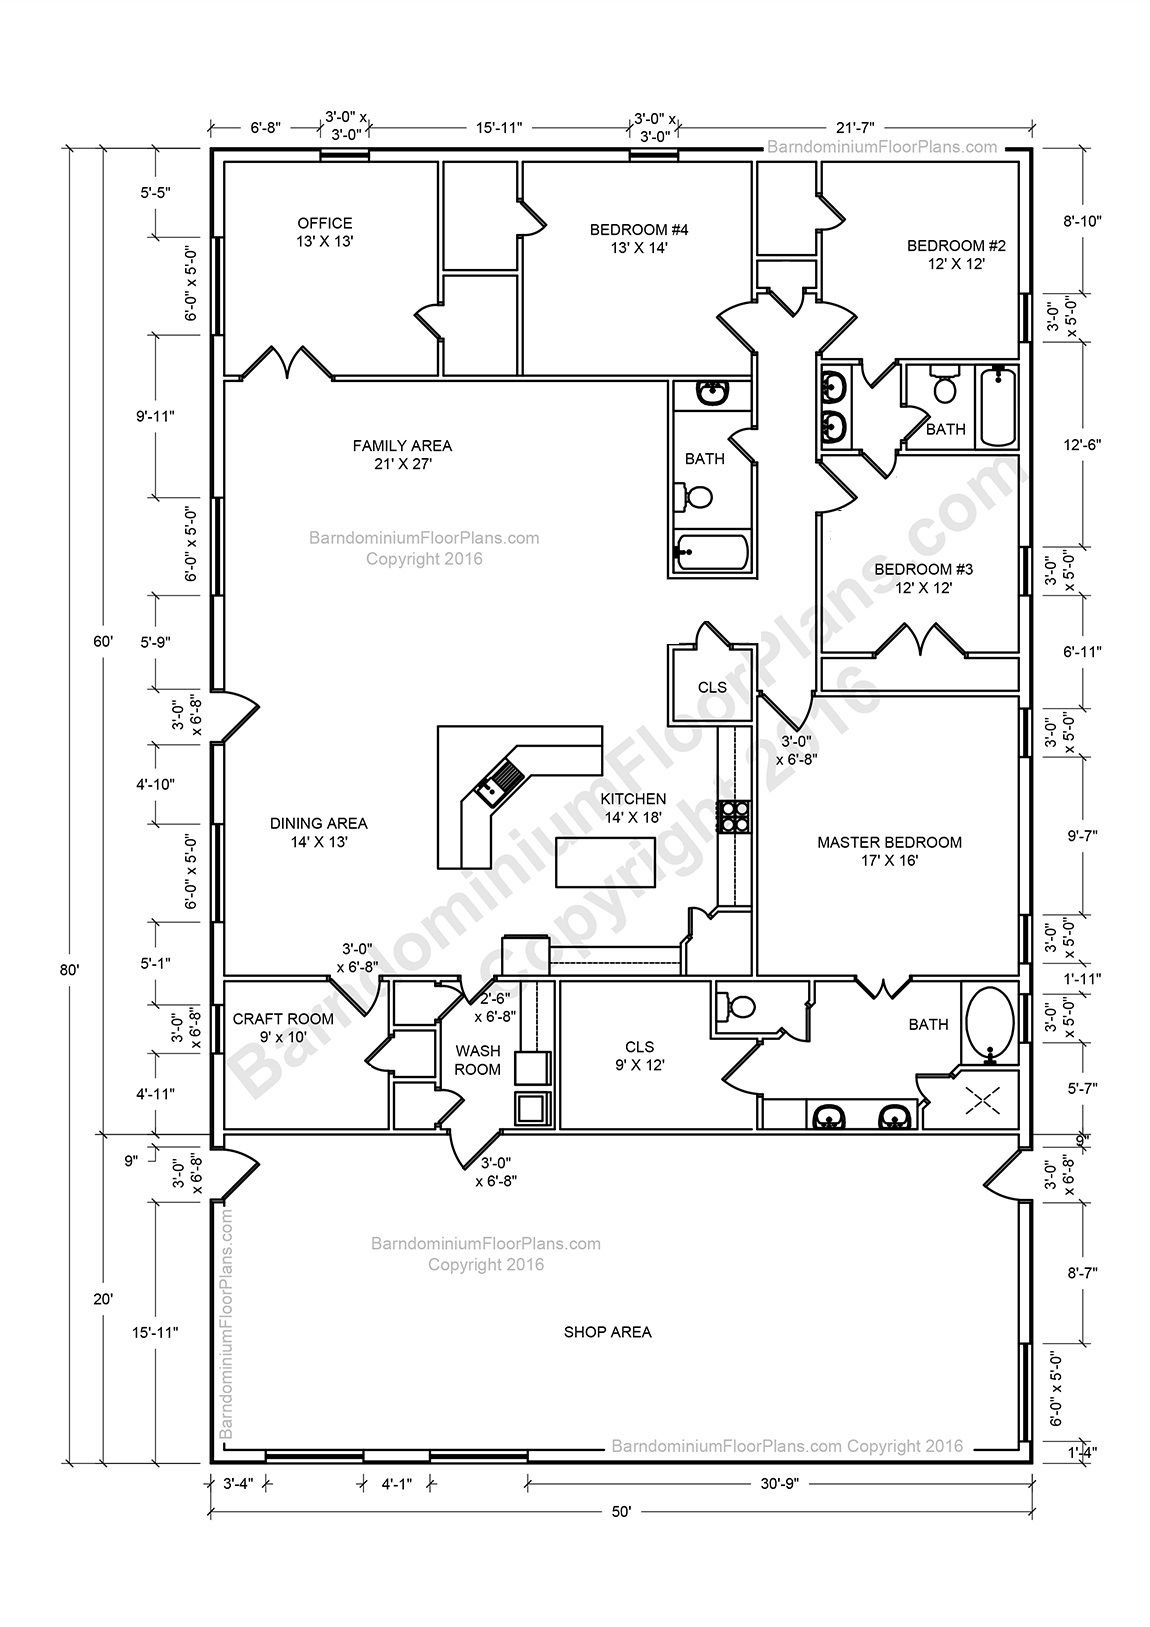 House Plans and Prices to Build Unique Barndominium Floor Plans Pole Barn House Plans and Metal